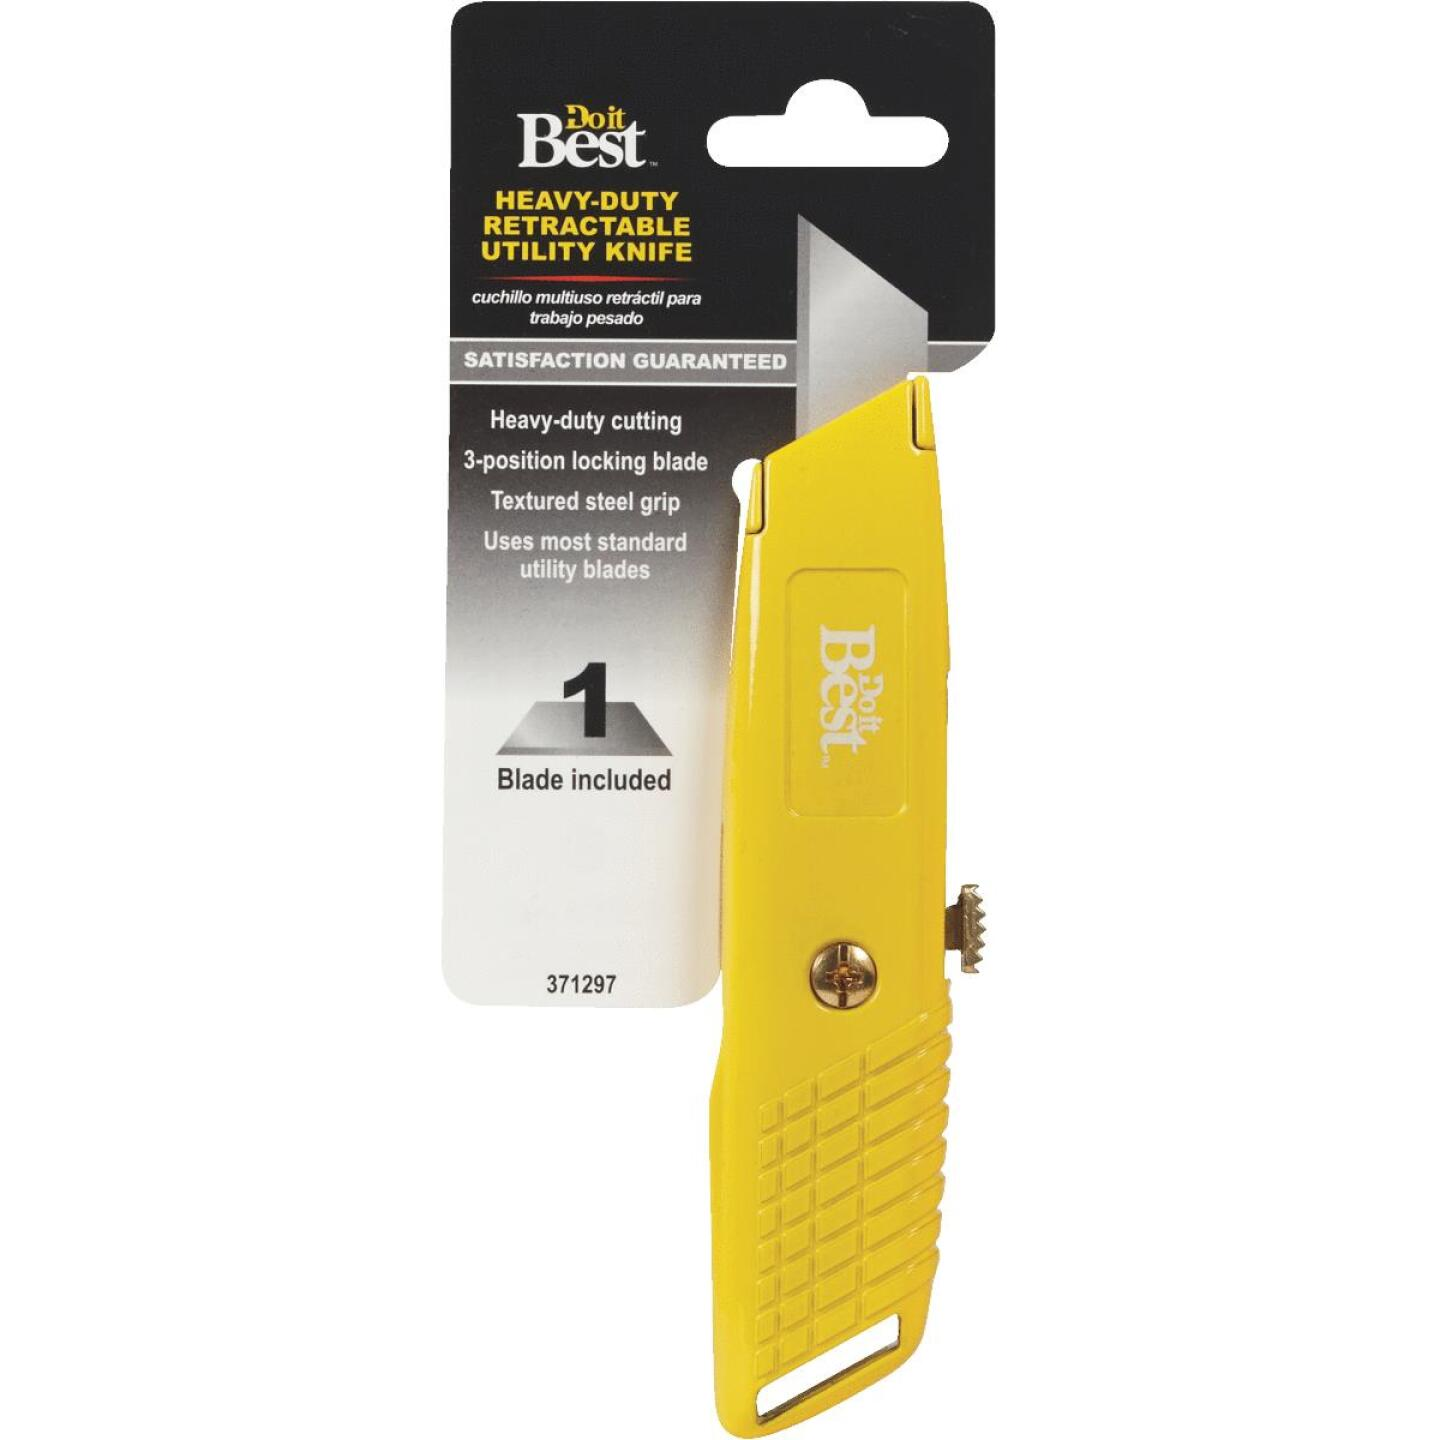 Do it Best Heavy-Duty Retractable Straight Utility Knife Image 3